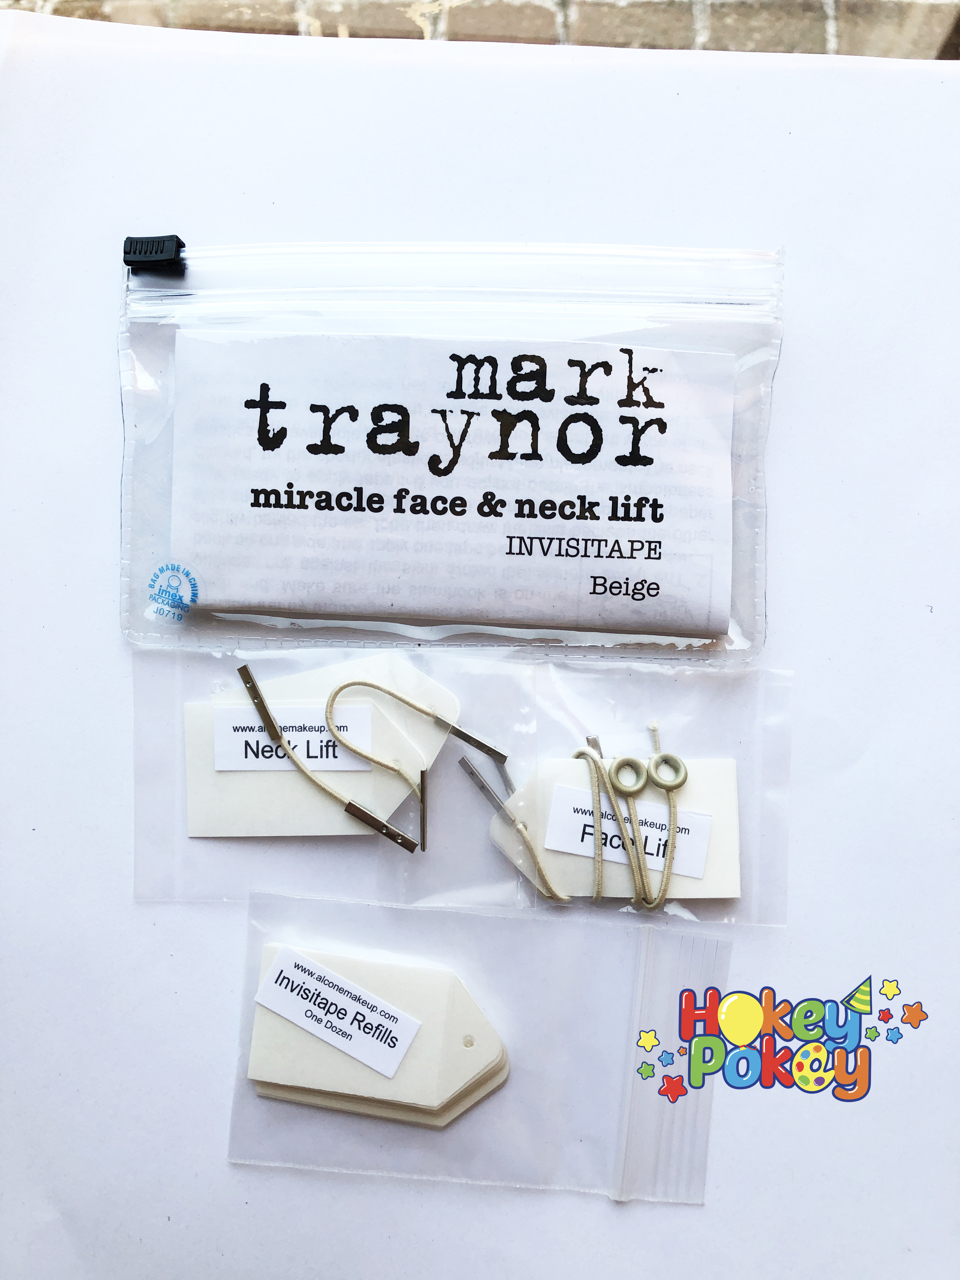 Picture of Mark Traynor Miracle Face & Neck Lift (Single kit with invisitape ) - Beige